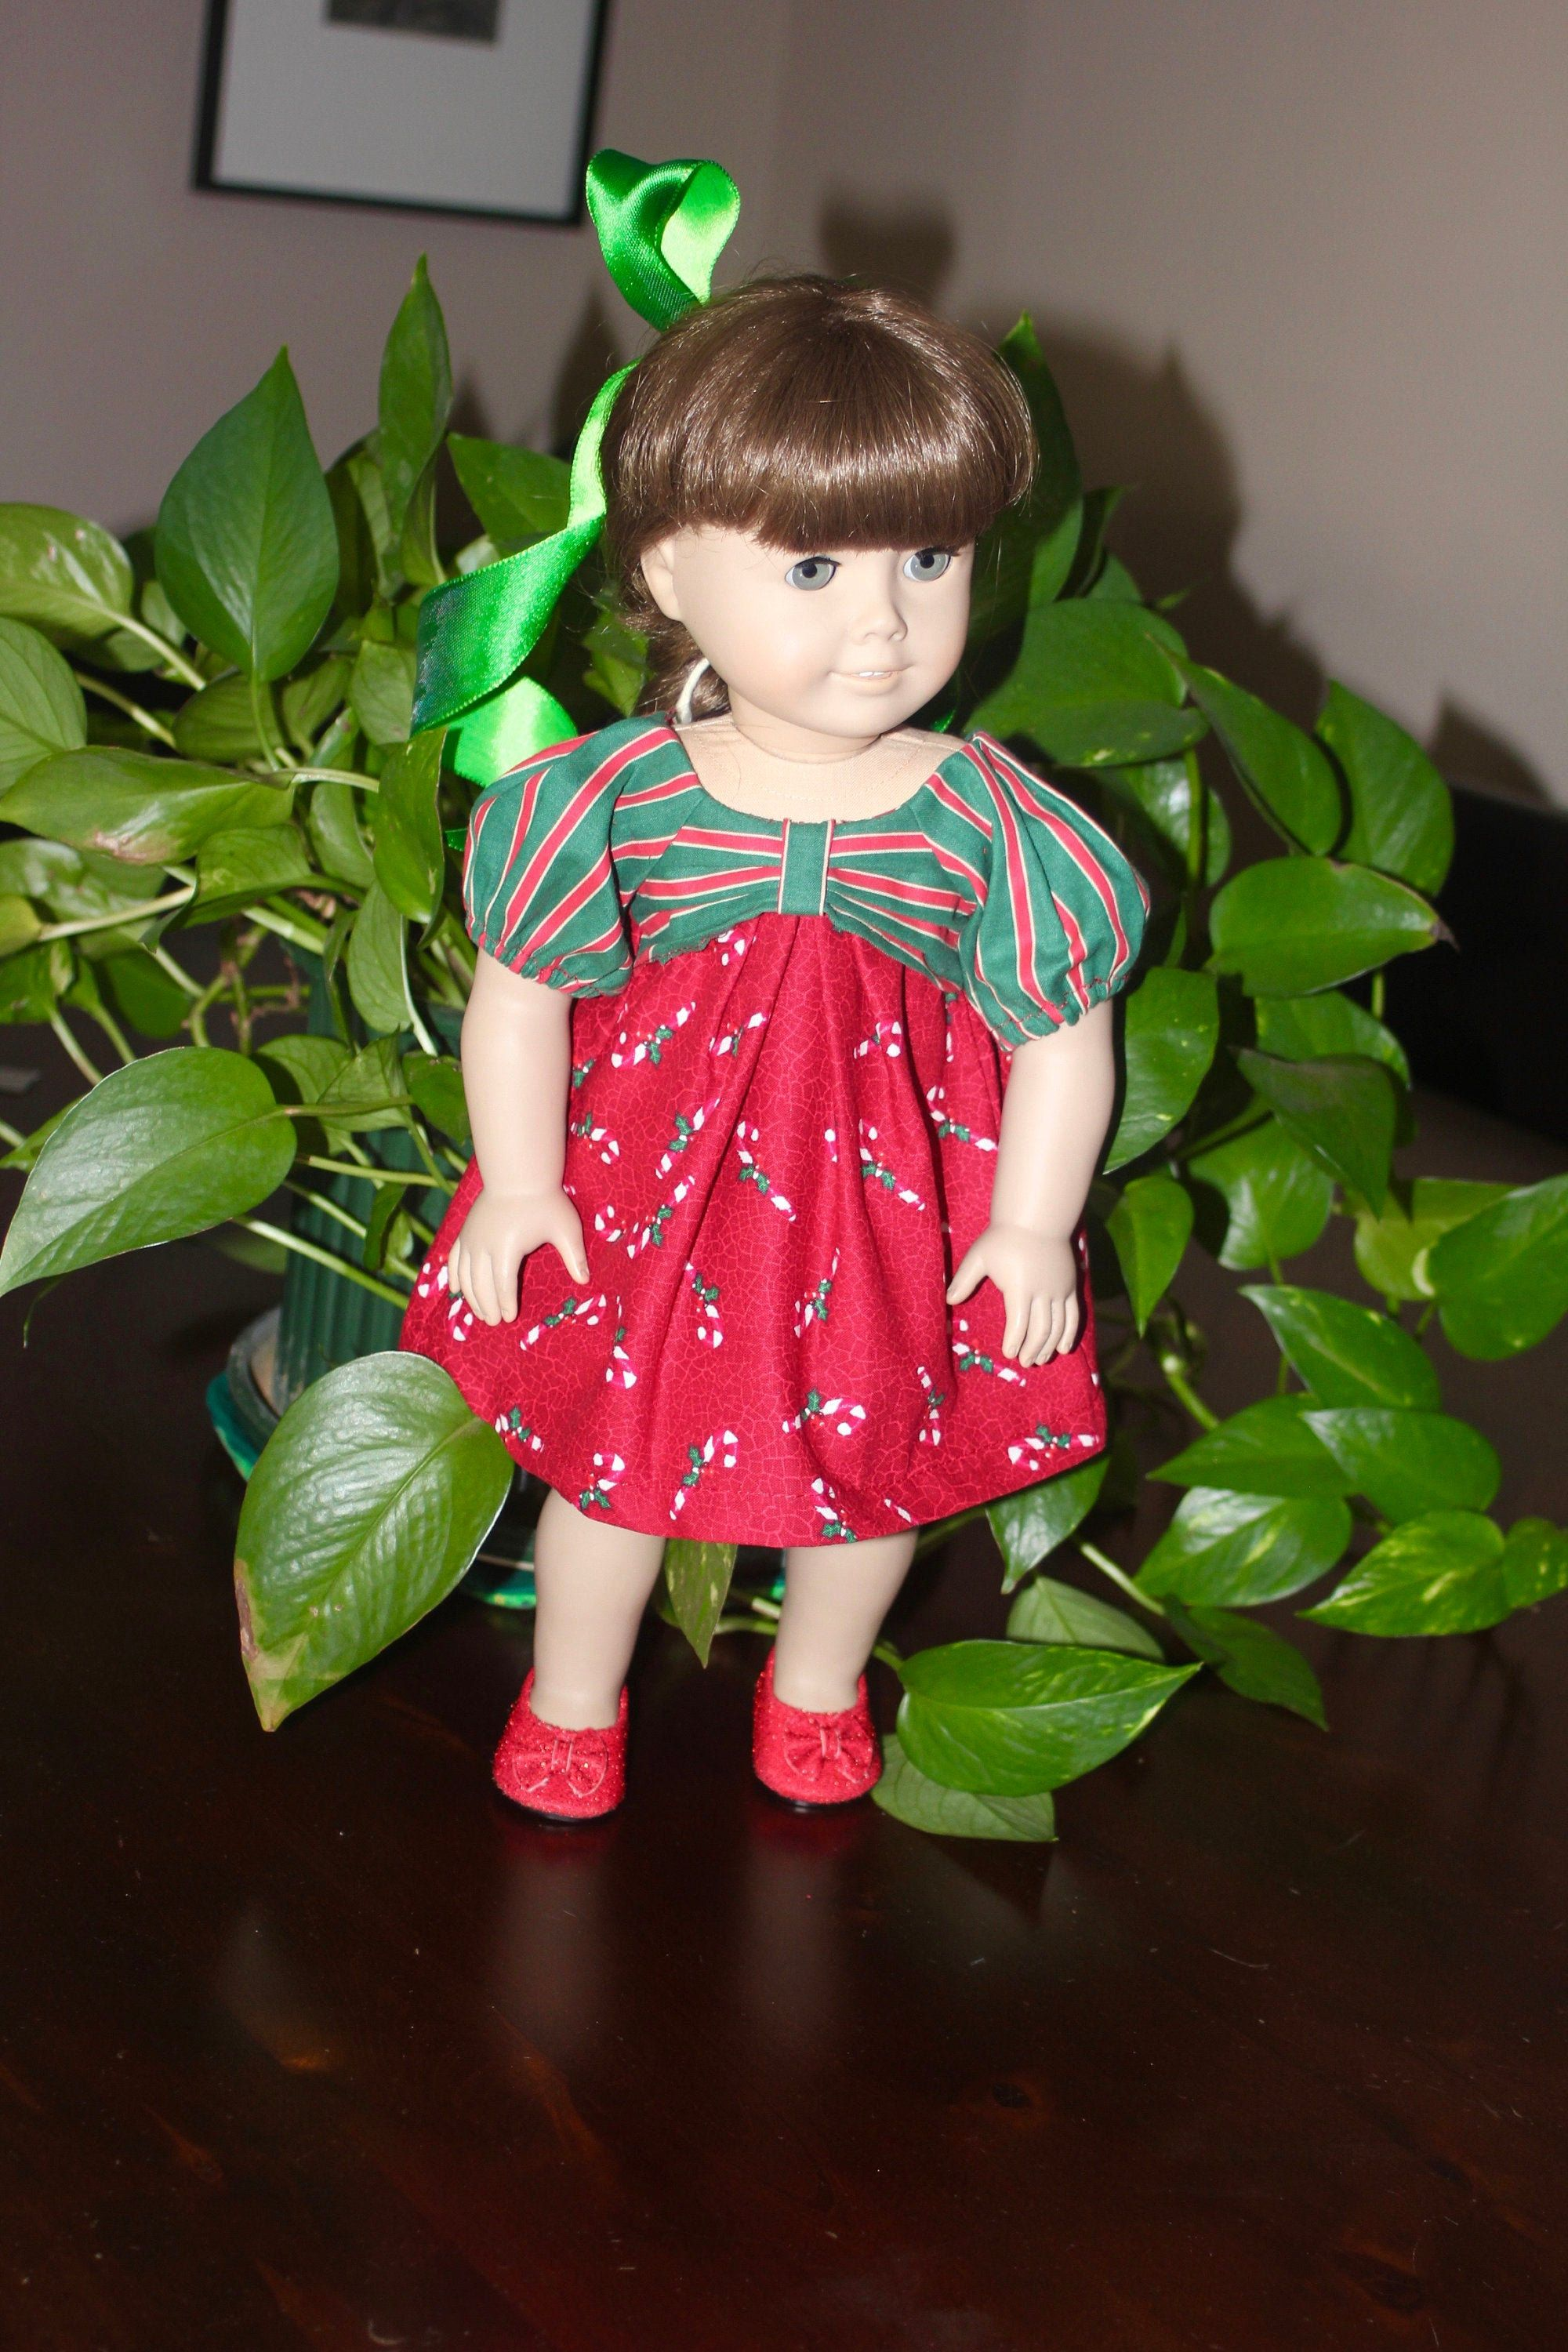 Free Shipping Bow Front Christmas Doll Dress, Lovely Candy Cane Dress fits 18 Inch Dolls, Toys, Doll Dress #dolldresspatterns